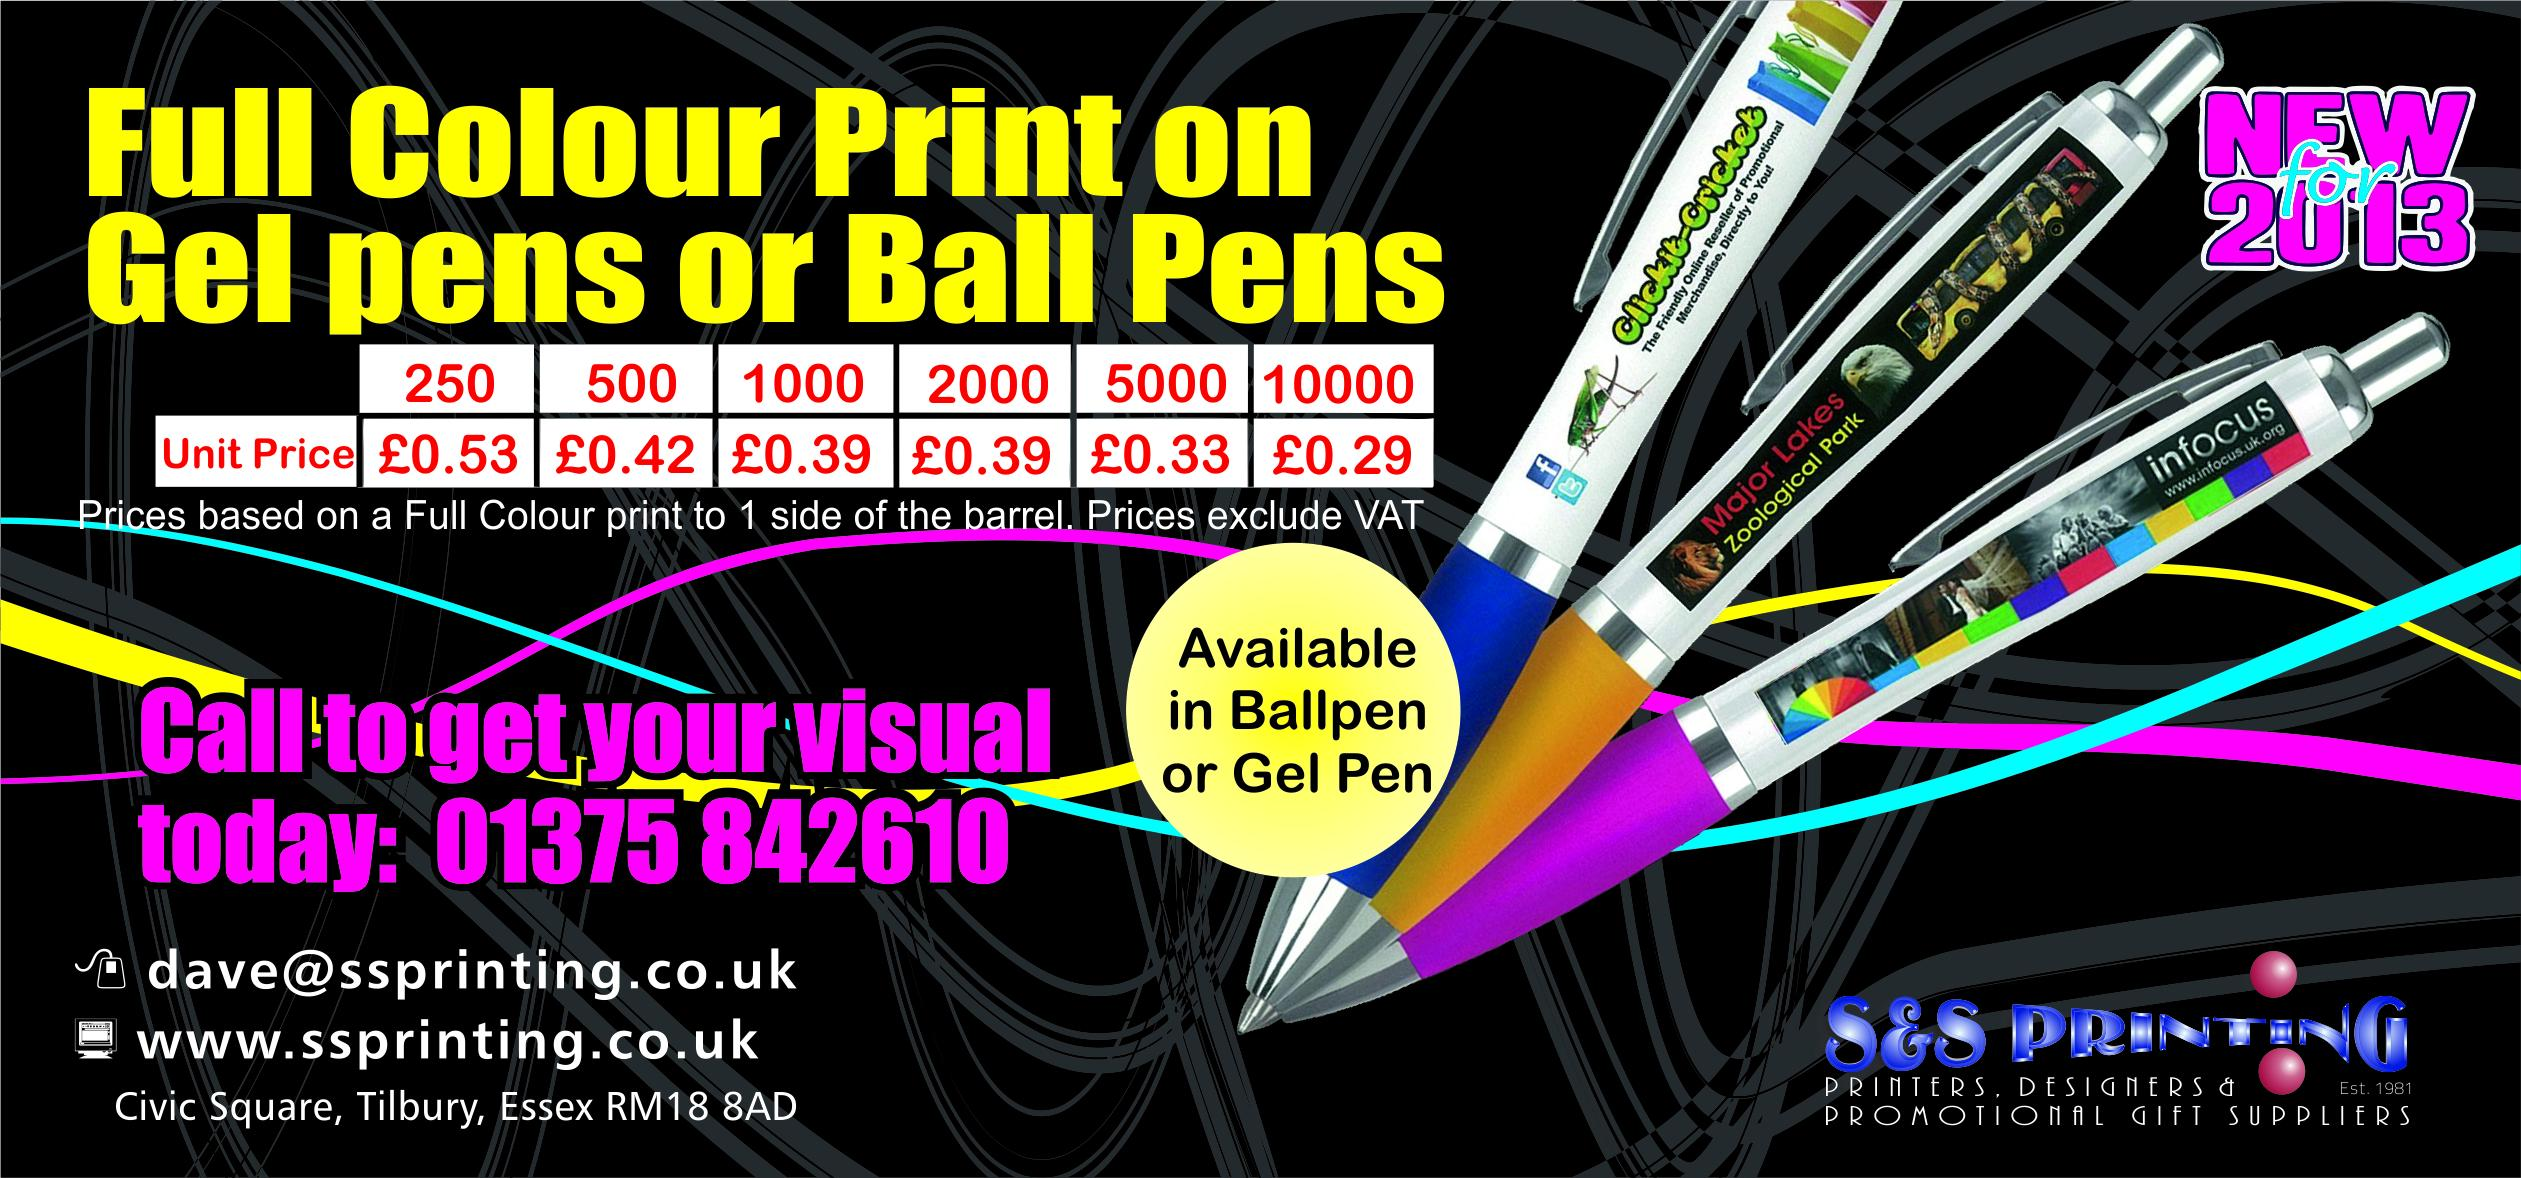 Full colour print on Ball or Gel pens